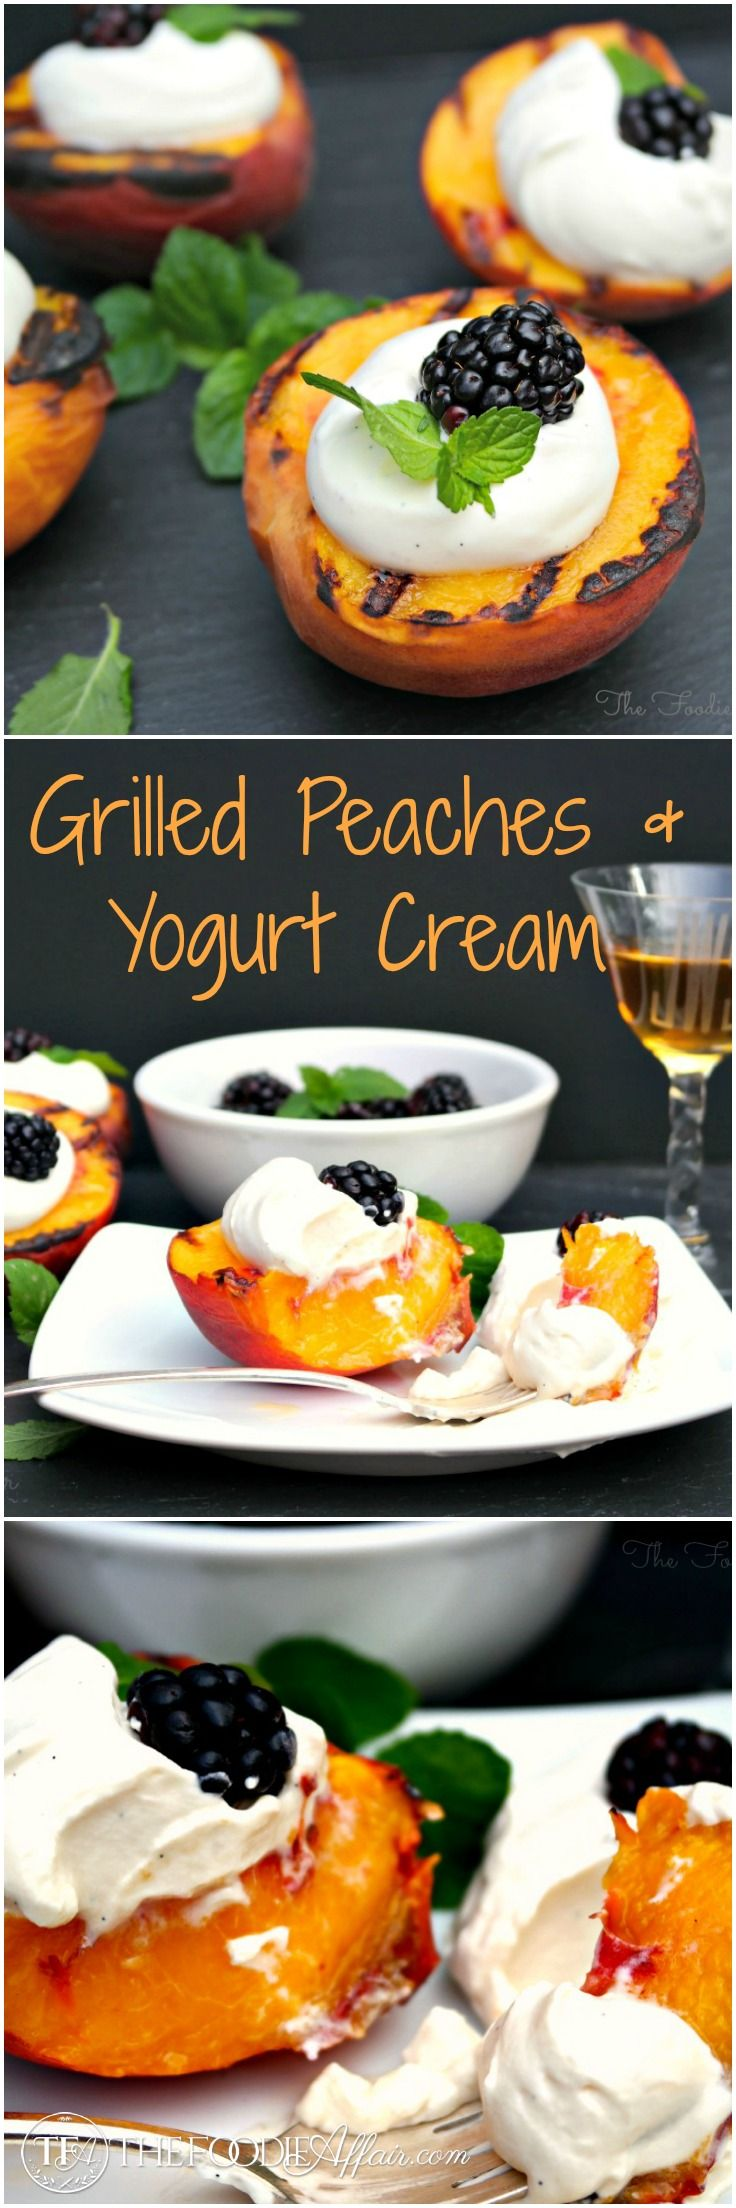 Sweet and juicy Grilled Peaches and Yogurt Cream with specks of vanilla bean seeds scattered in the yogurt and whipped cream. The Foodie Affair #peaches #grilled #summer #recipe